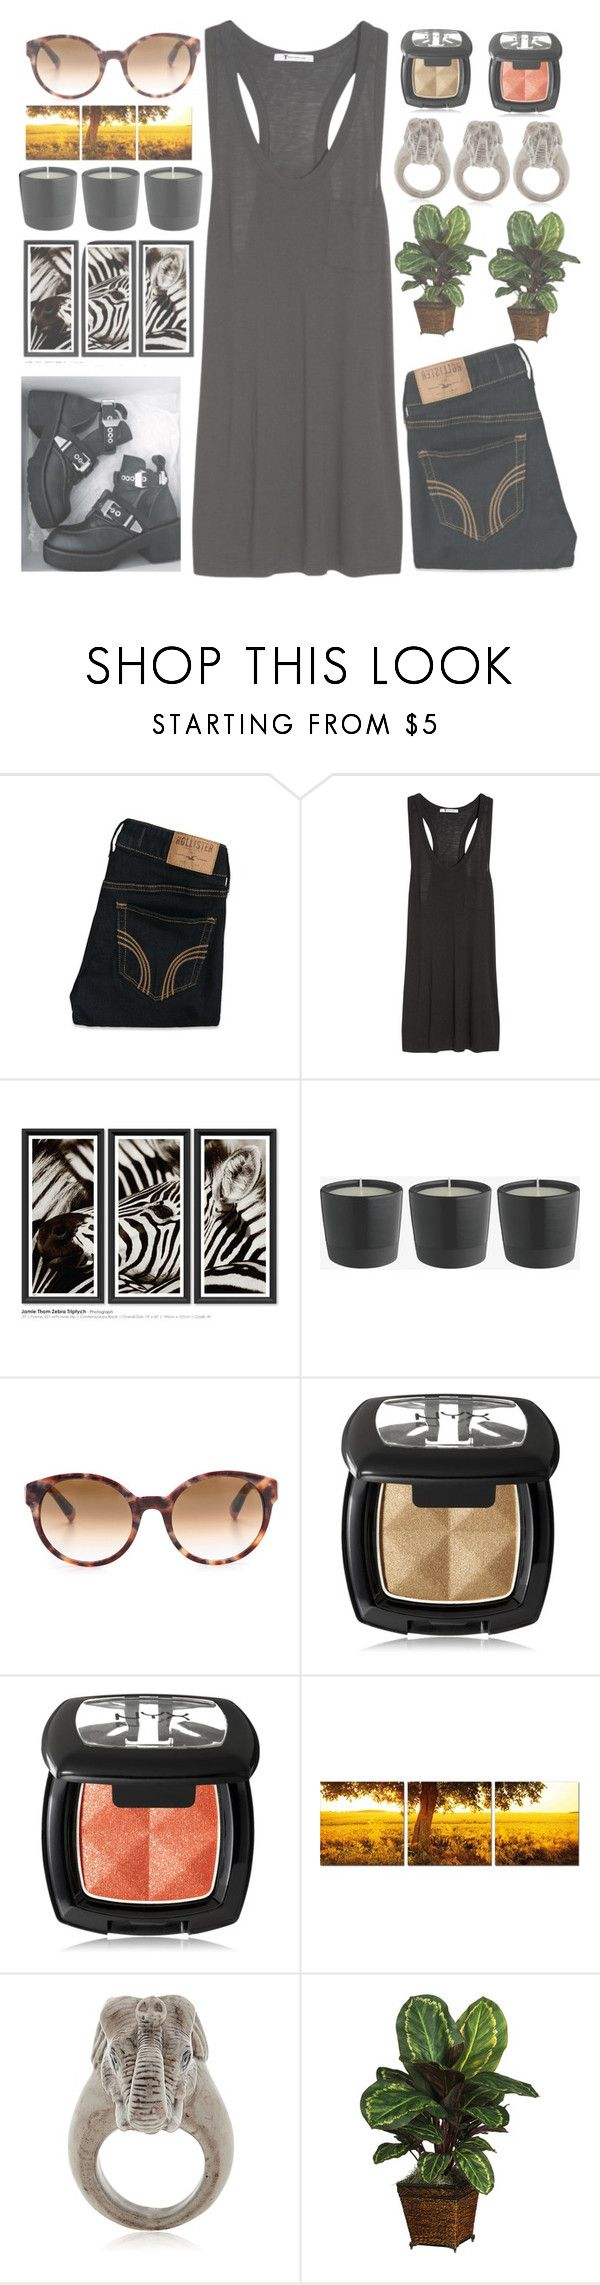 """""""Untitled #333"""" by chantellehofland ❤ liked on Polyvore featuring Hollister Co., T By Alexander Wang, Trowbridge, Etnia Barcelona, NYX, Elementem Photography, Nach and Nearly Natural"""